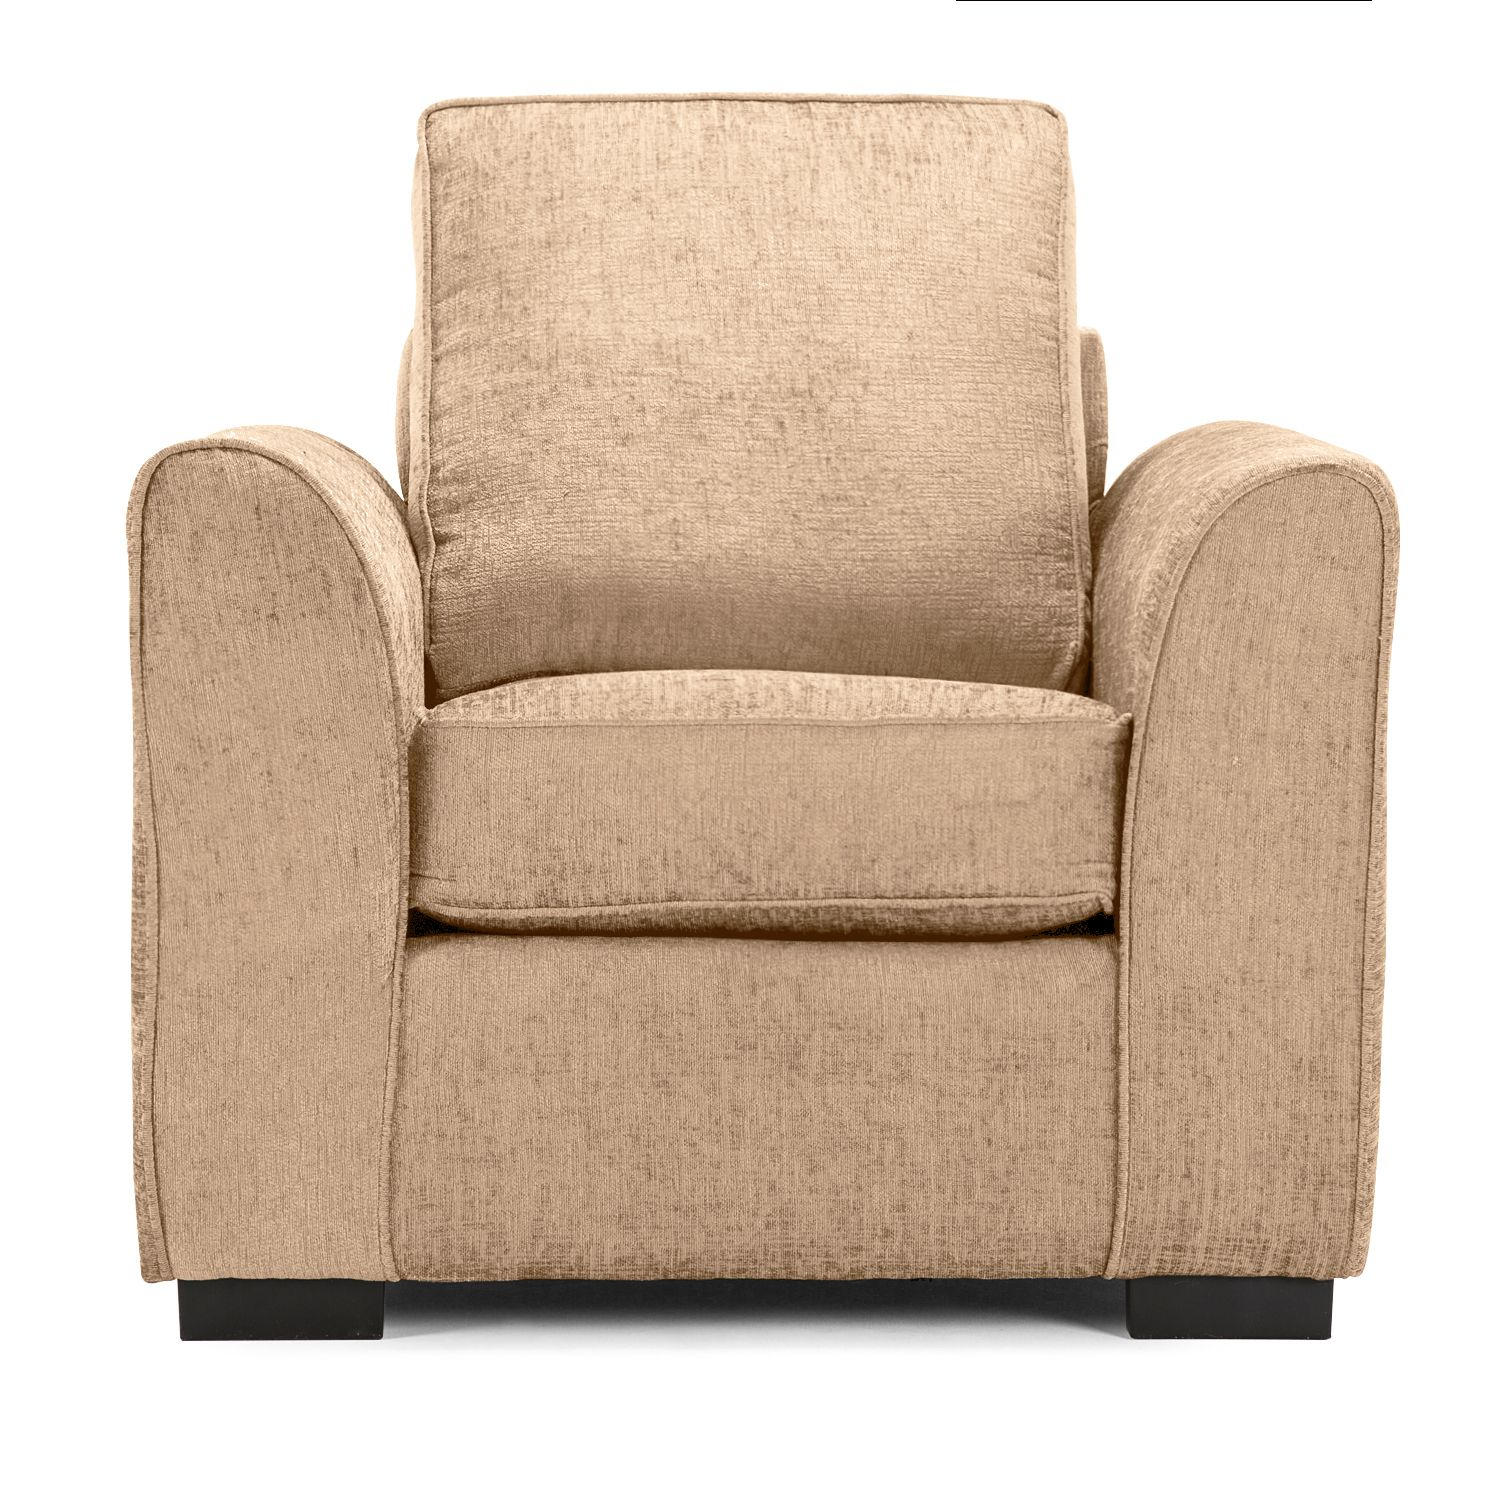 armchairs uk | armchairs | uk armchairs | armchairs for ...